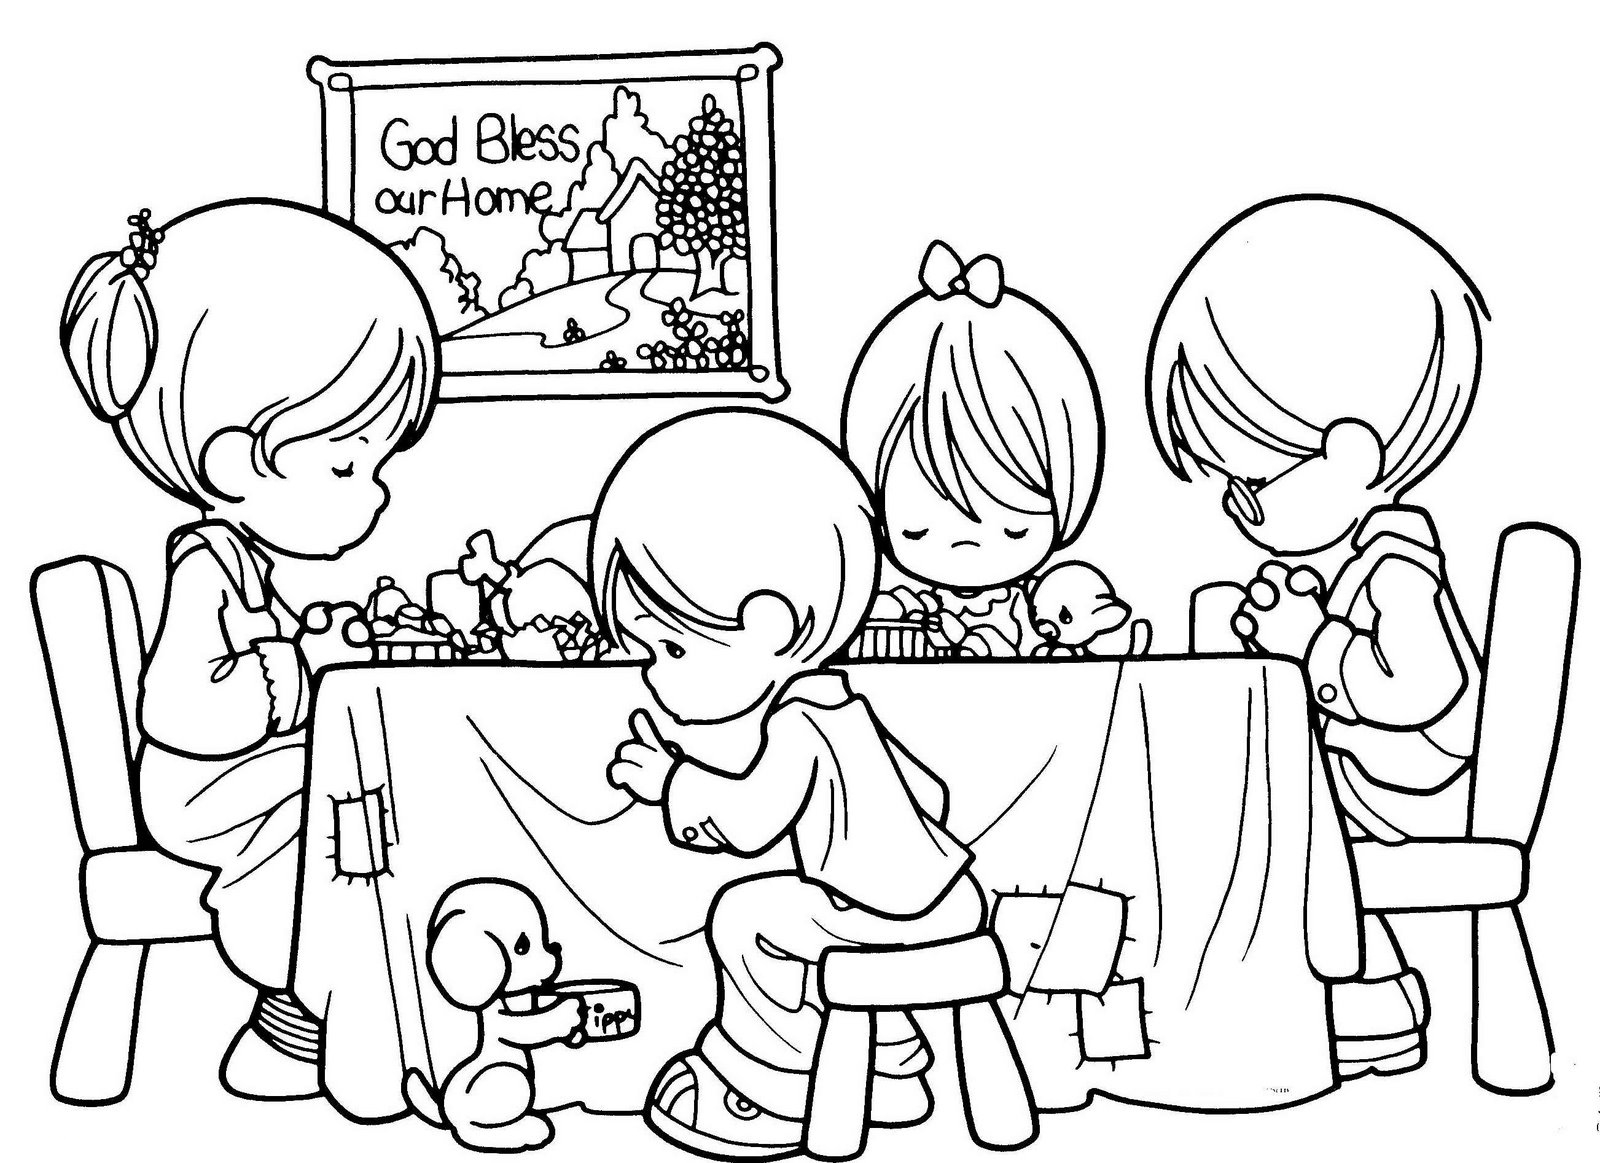 christian children coloring pages free - photo#1